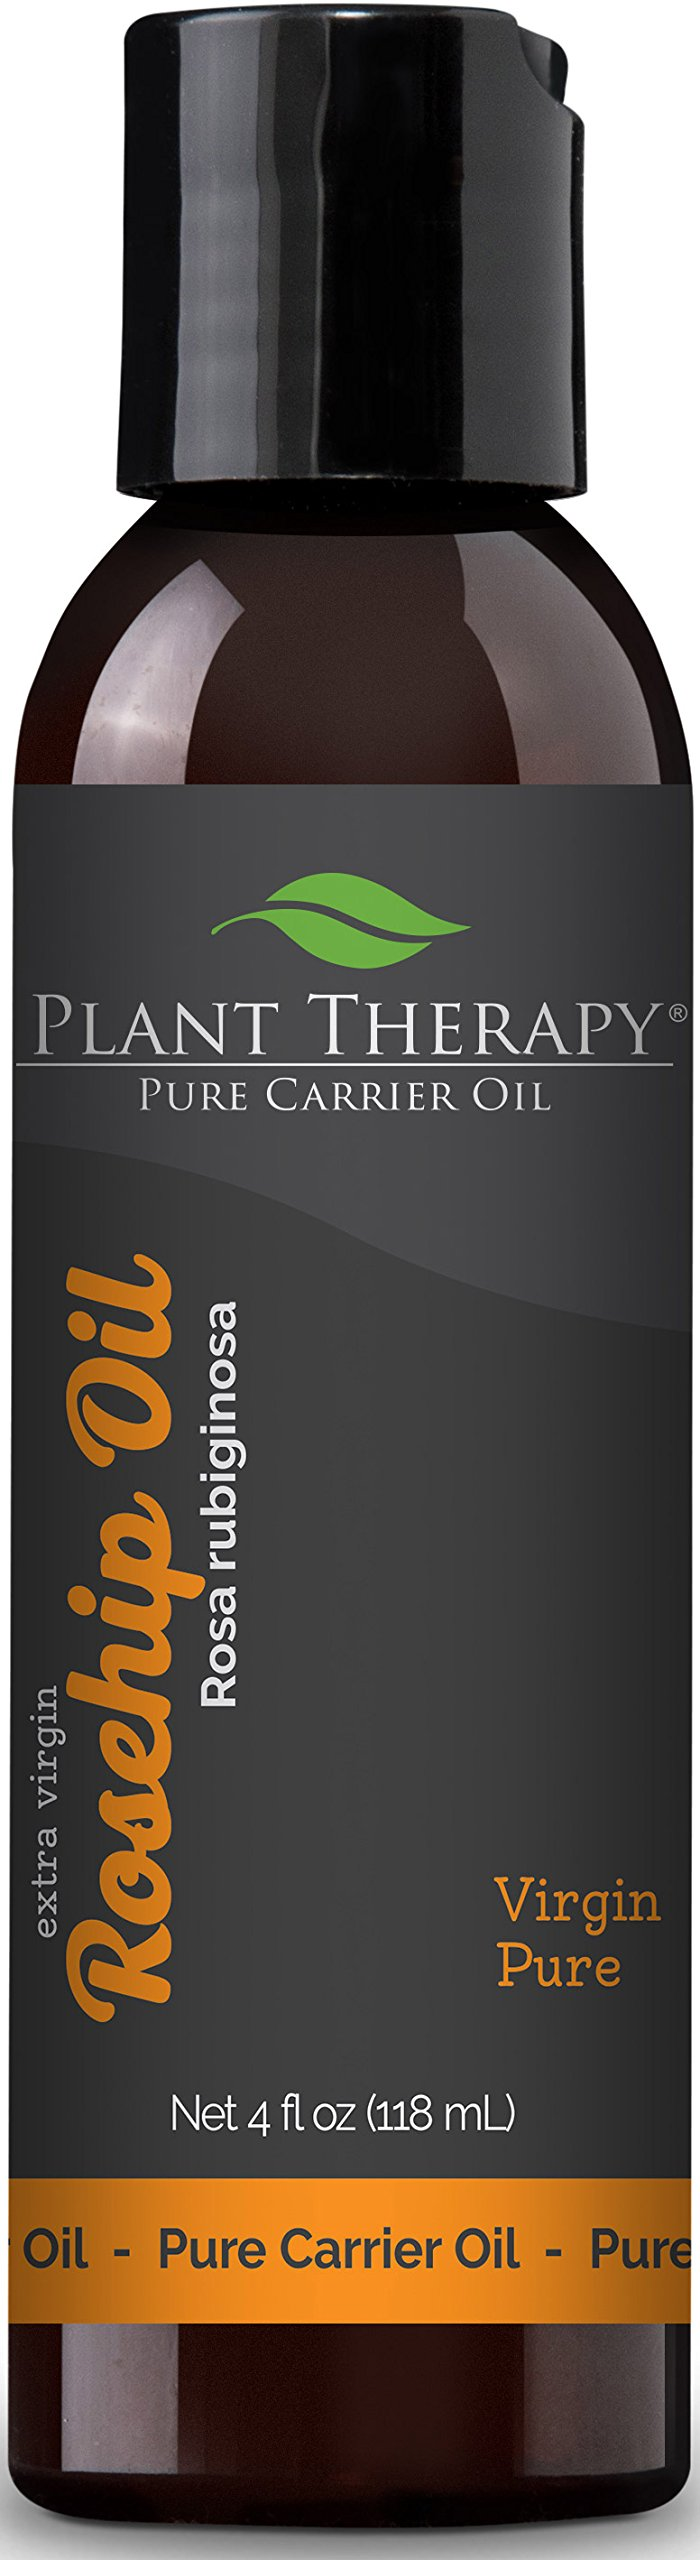 Plant Therapy Rosehip (Extra Virgin) Carrier Oil. A Base Oil for Aromatherapy, Essential Oil or Massage use. 4 oz.